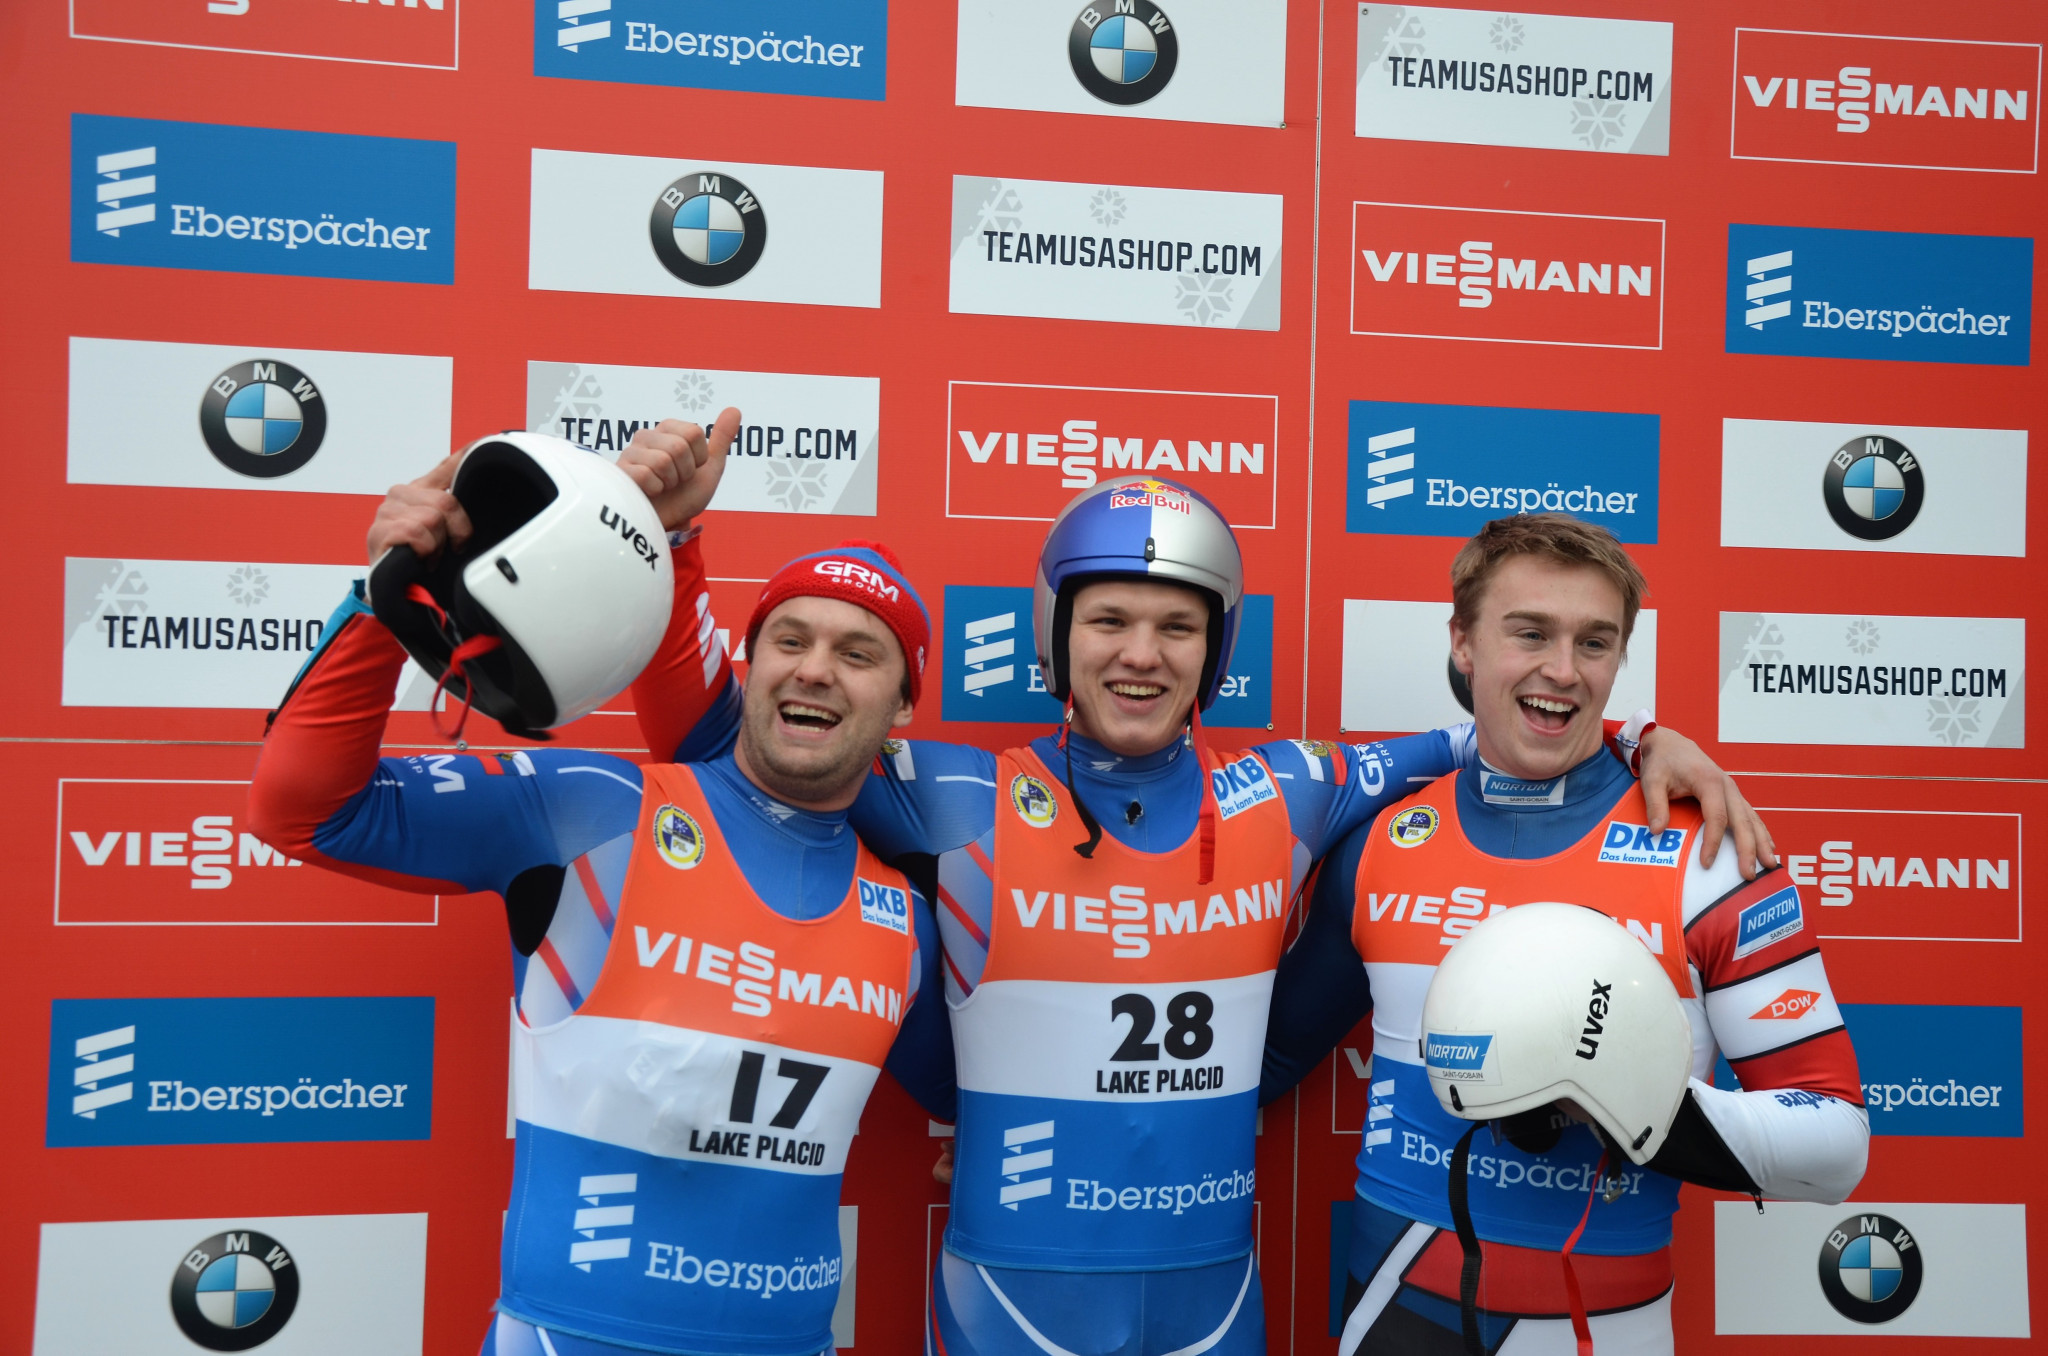 Repilov breaks record on way to Luge World Cup victory with Pyeongchang 2018 places up for grabs